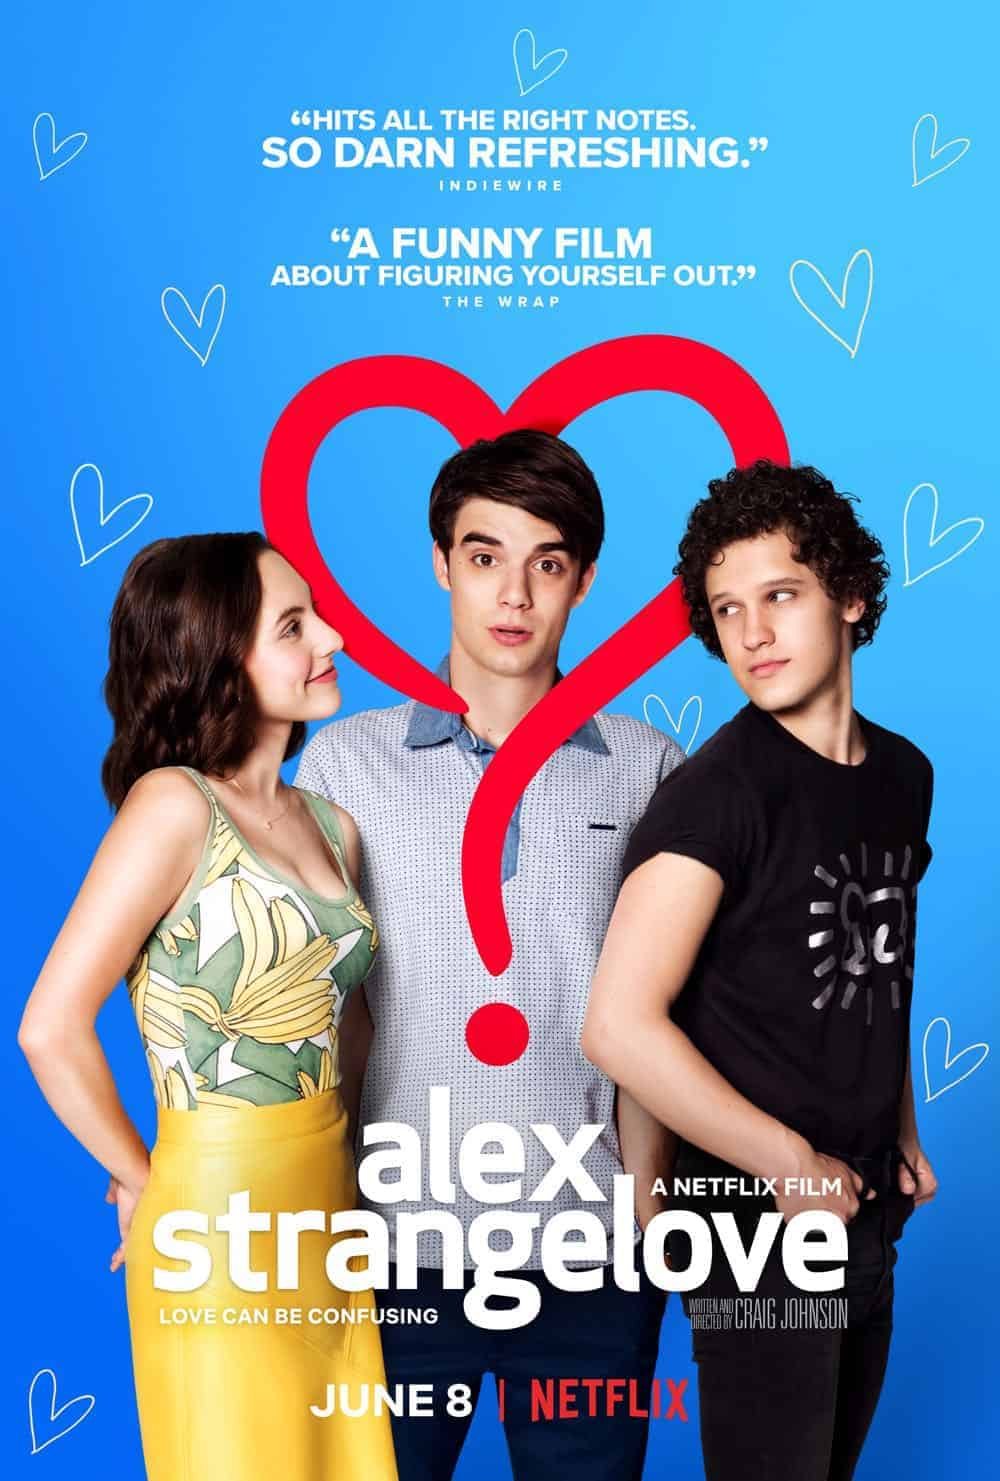 Image result for alex strangelove poster